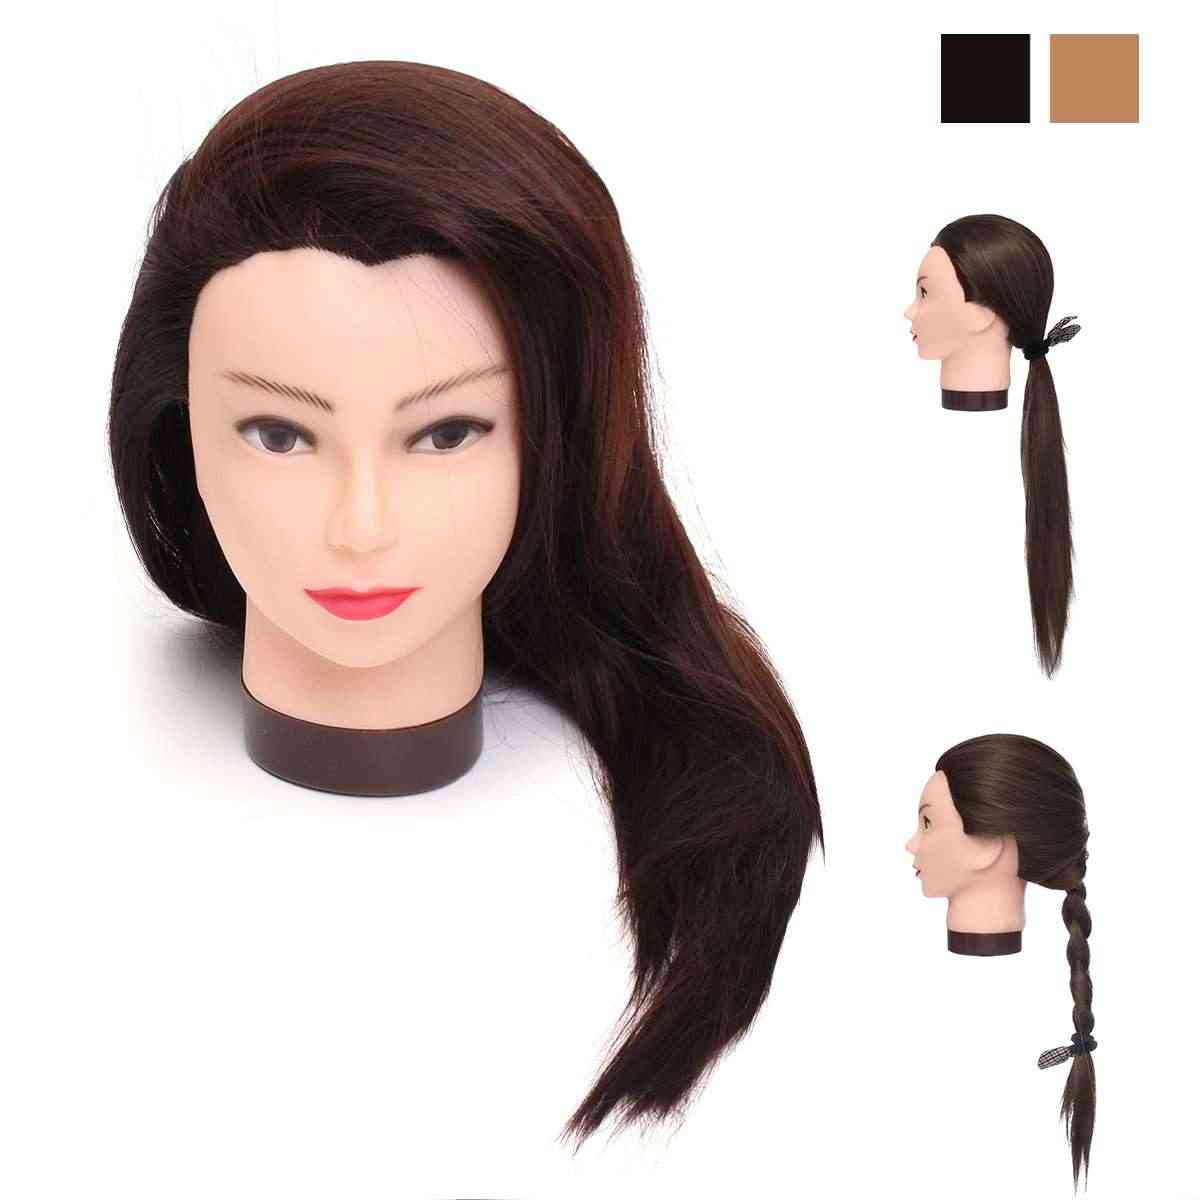 70cm Real Human Hair Hairdressing Training Mannequins Wig Head Professional Salon Practice Head Hairdresser Styling + Bracket